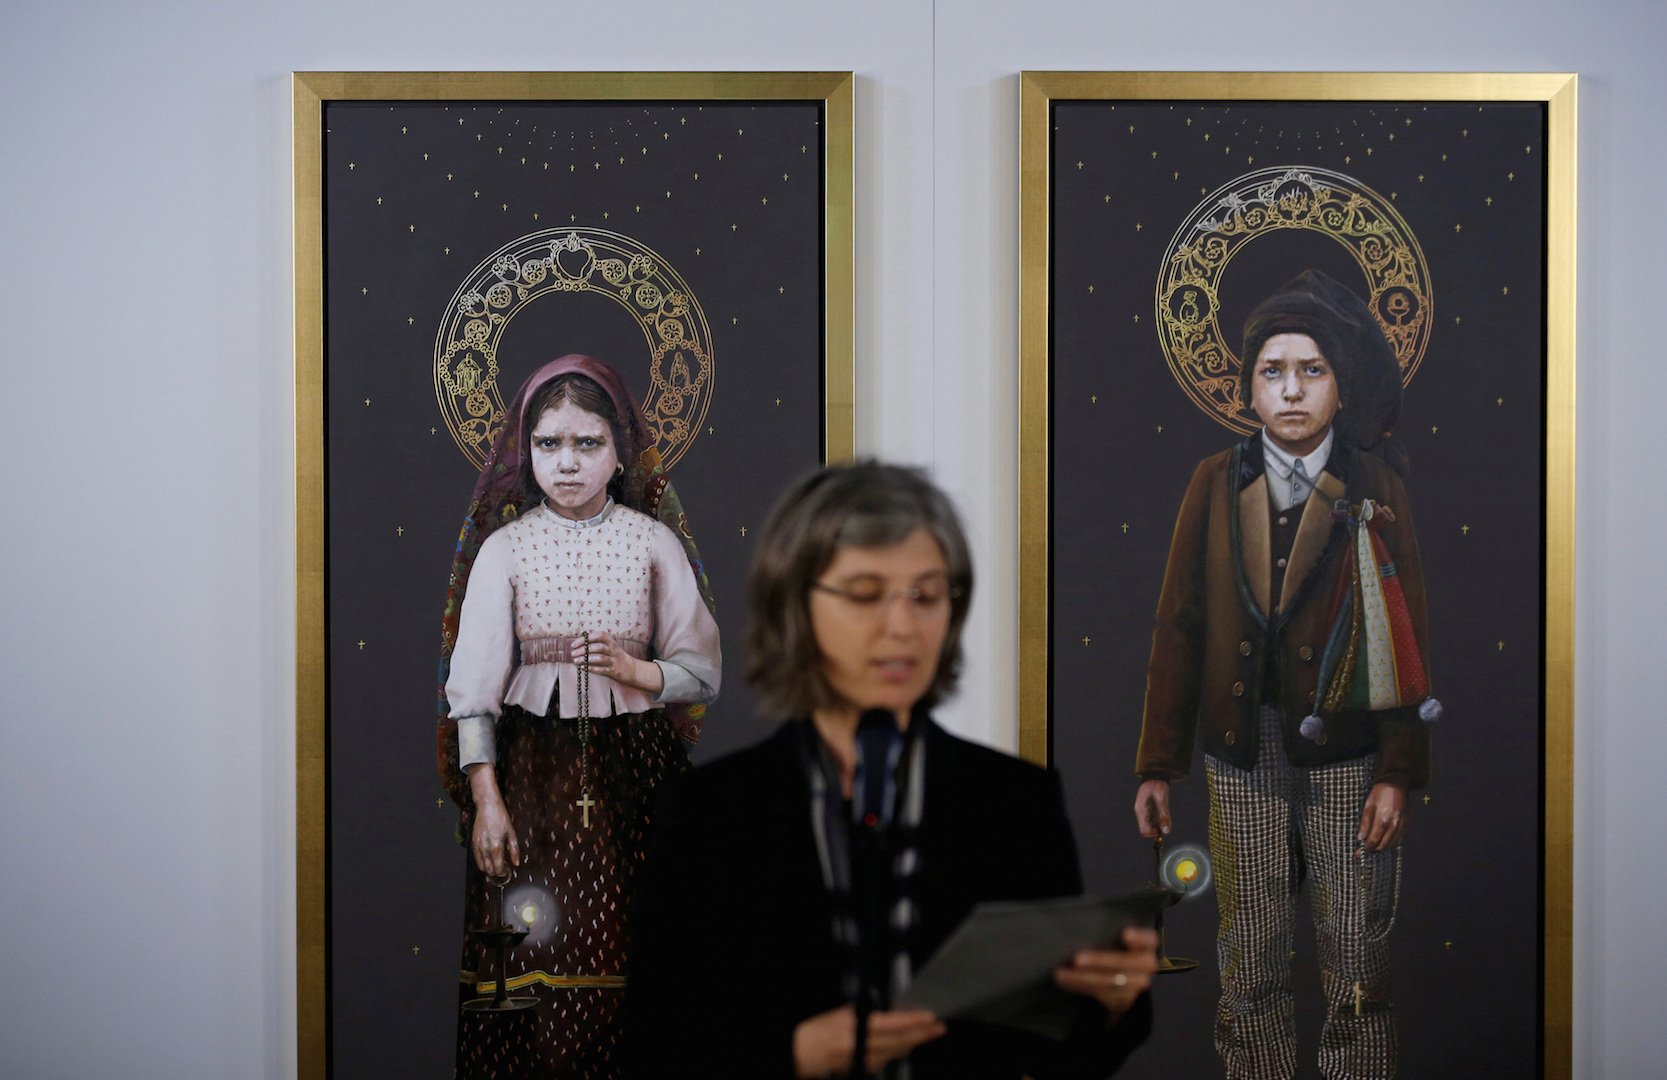 Two paintings of Blessed Jacinta Marto and Blessed Francisco Marto are presented during a May 8 news conference in Fatima, Portugal (CNS photo/Rafael Marchante, Reuters).